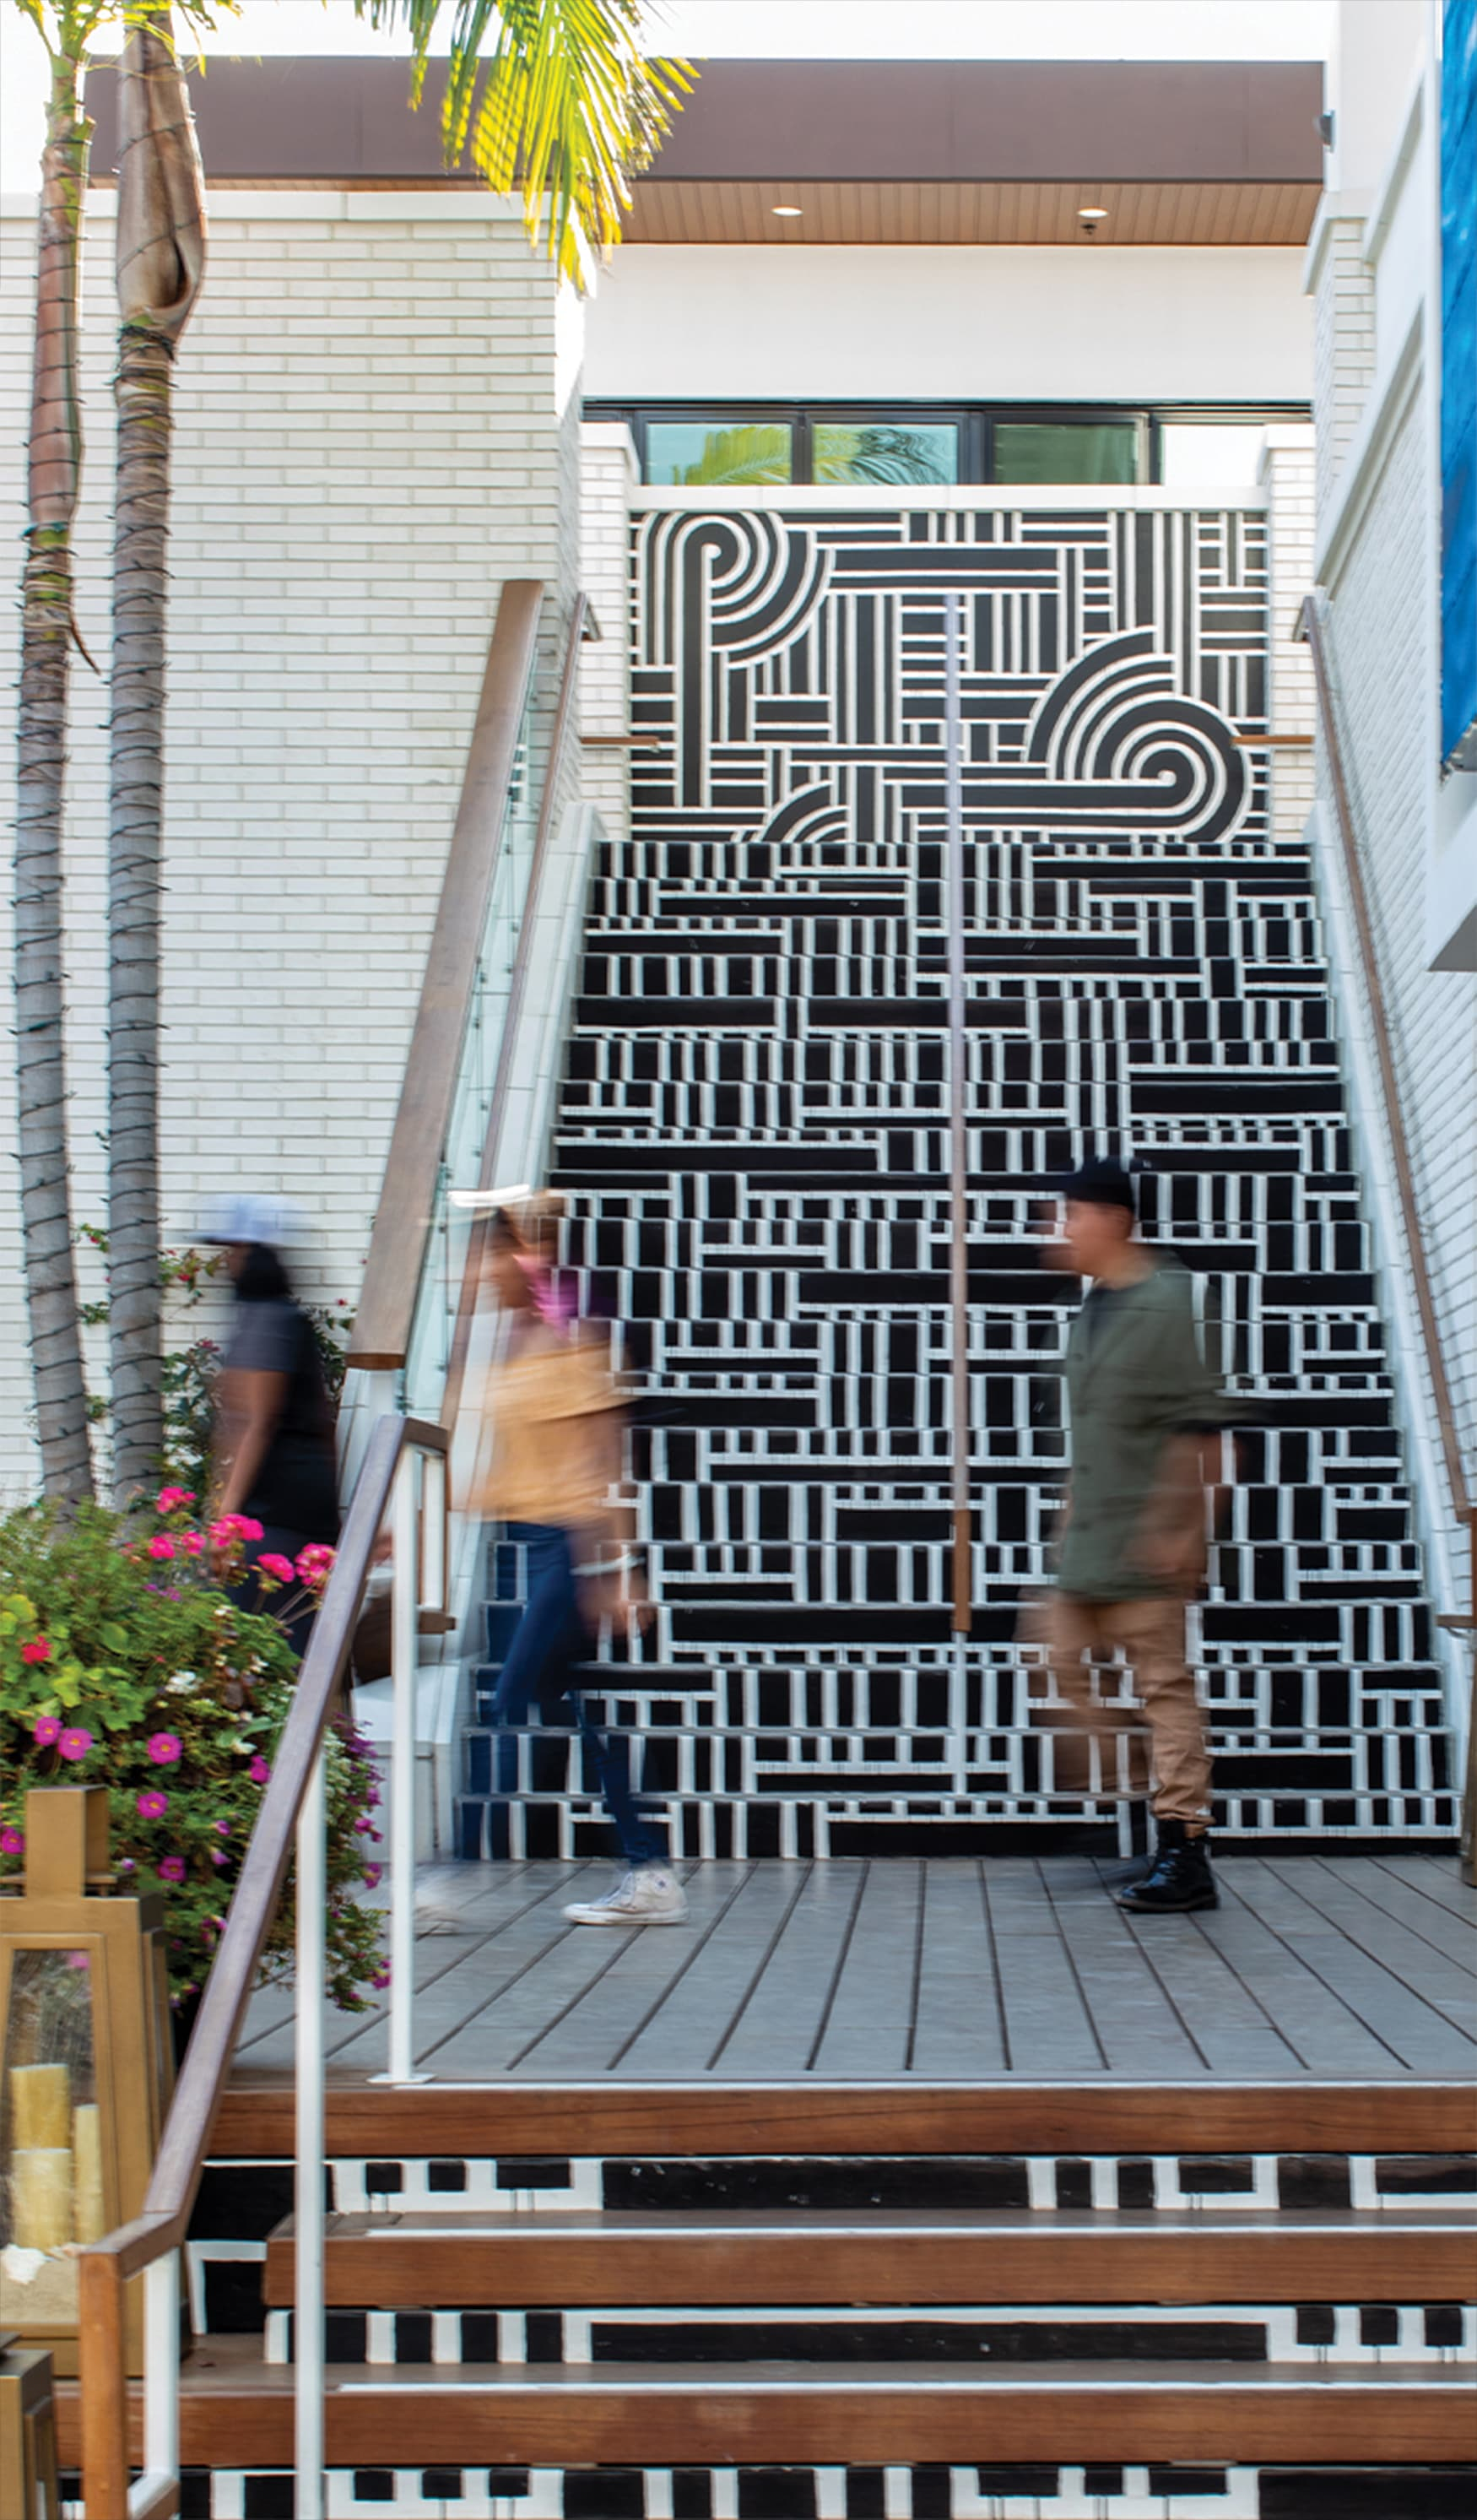 2nd & PCH public art staircase mural